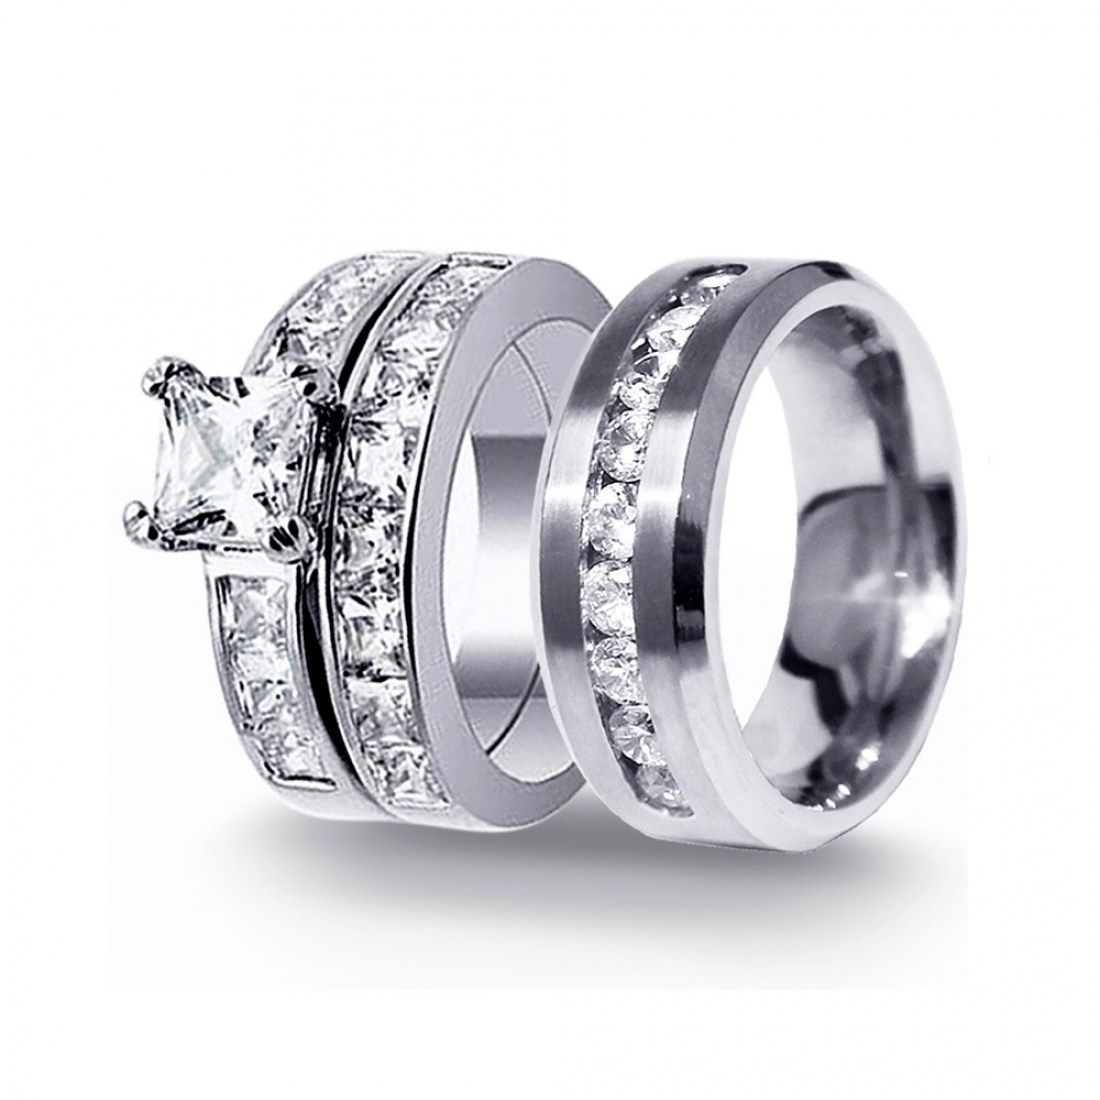 32 Stunning Silver Wedding Rings For Men And Women | Silver wedding ...